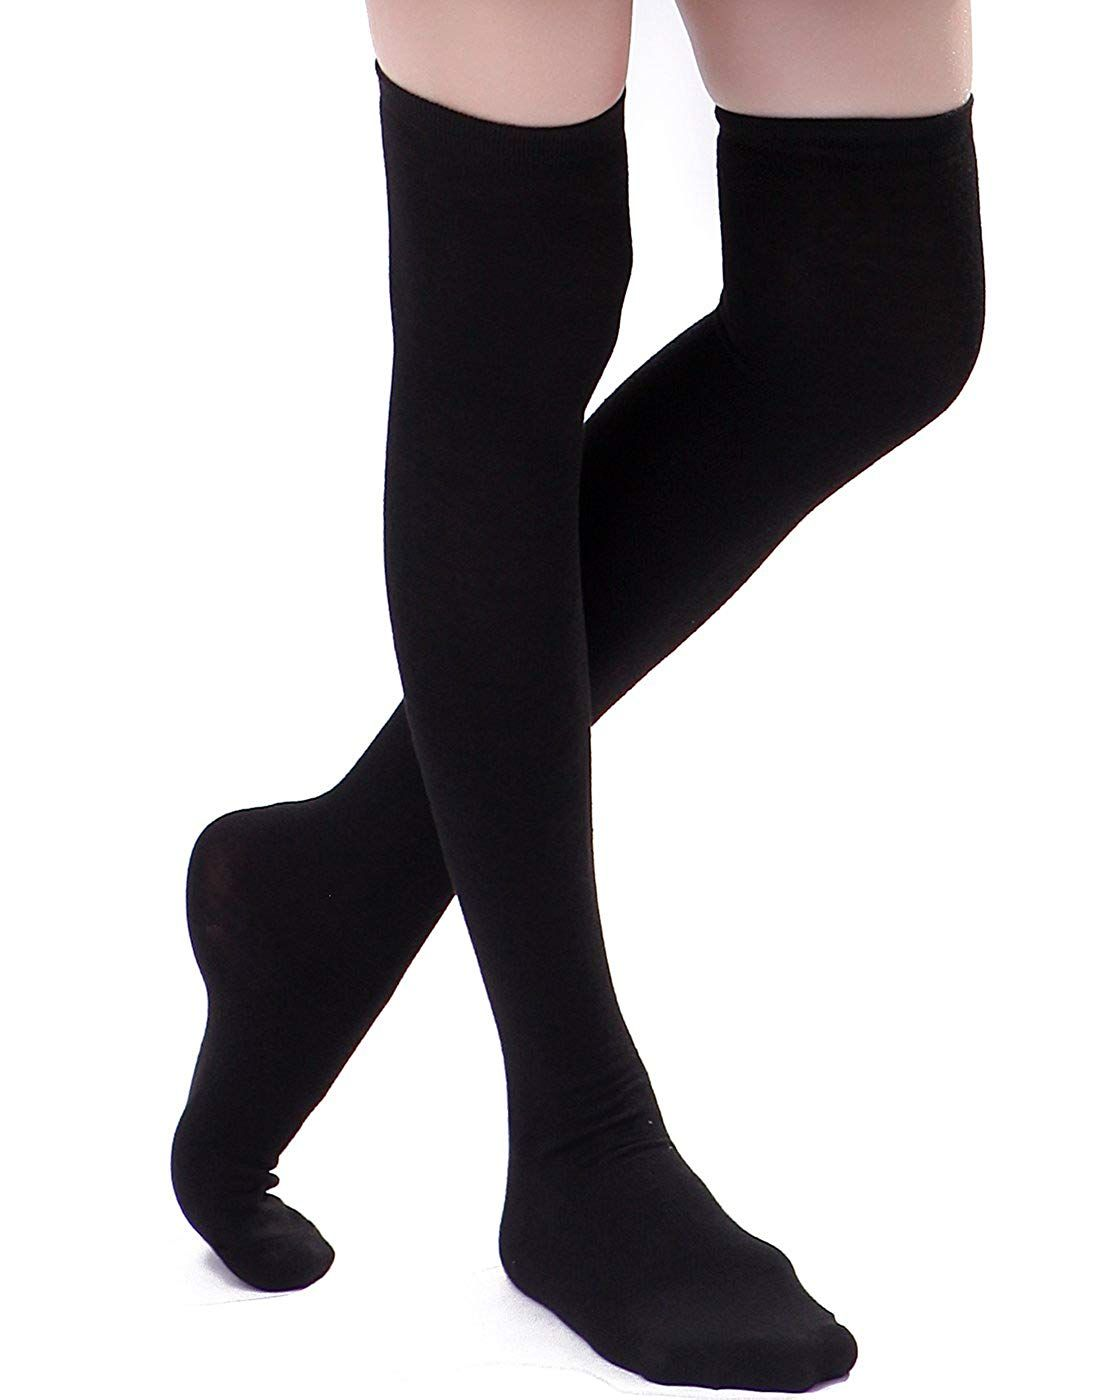 70eb34b85c85c HDE Women's Knee High Stockings Solid Color Opaque Cotton Spandex Fashion  Socks at Amazon Women's Clothing store: